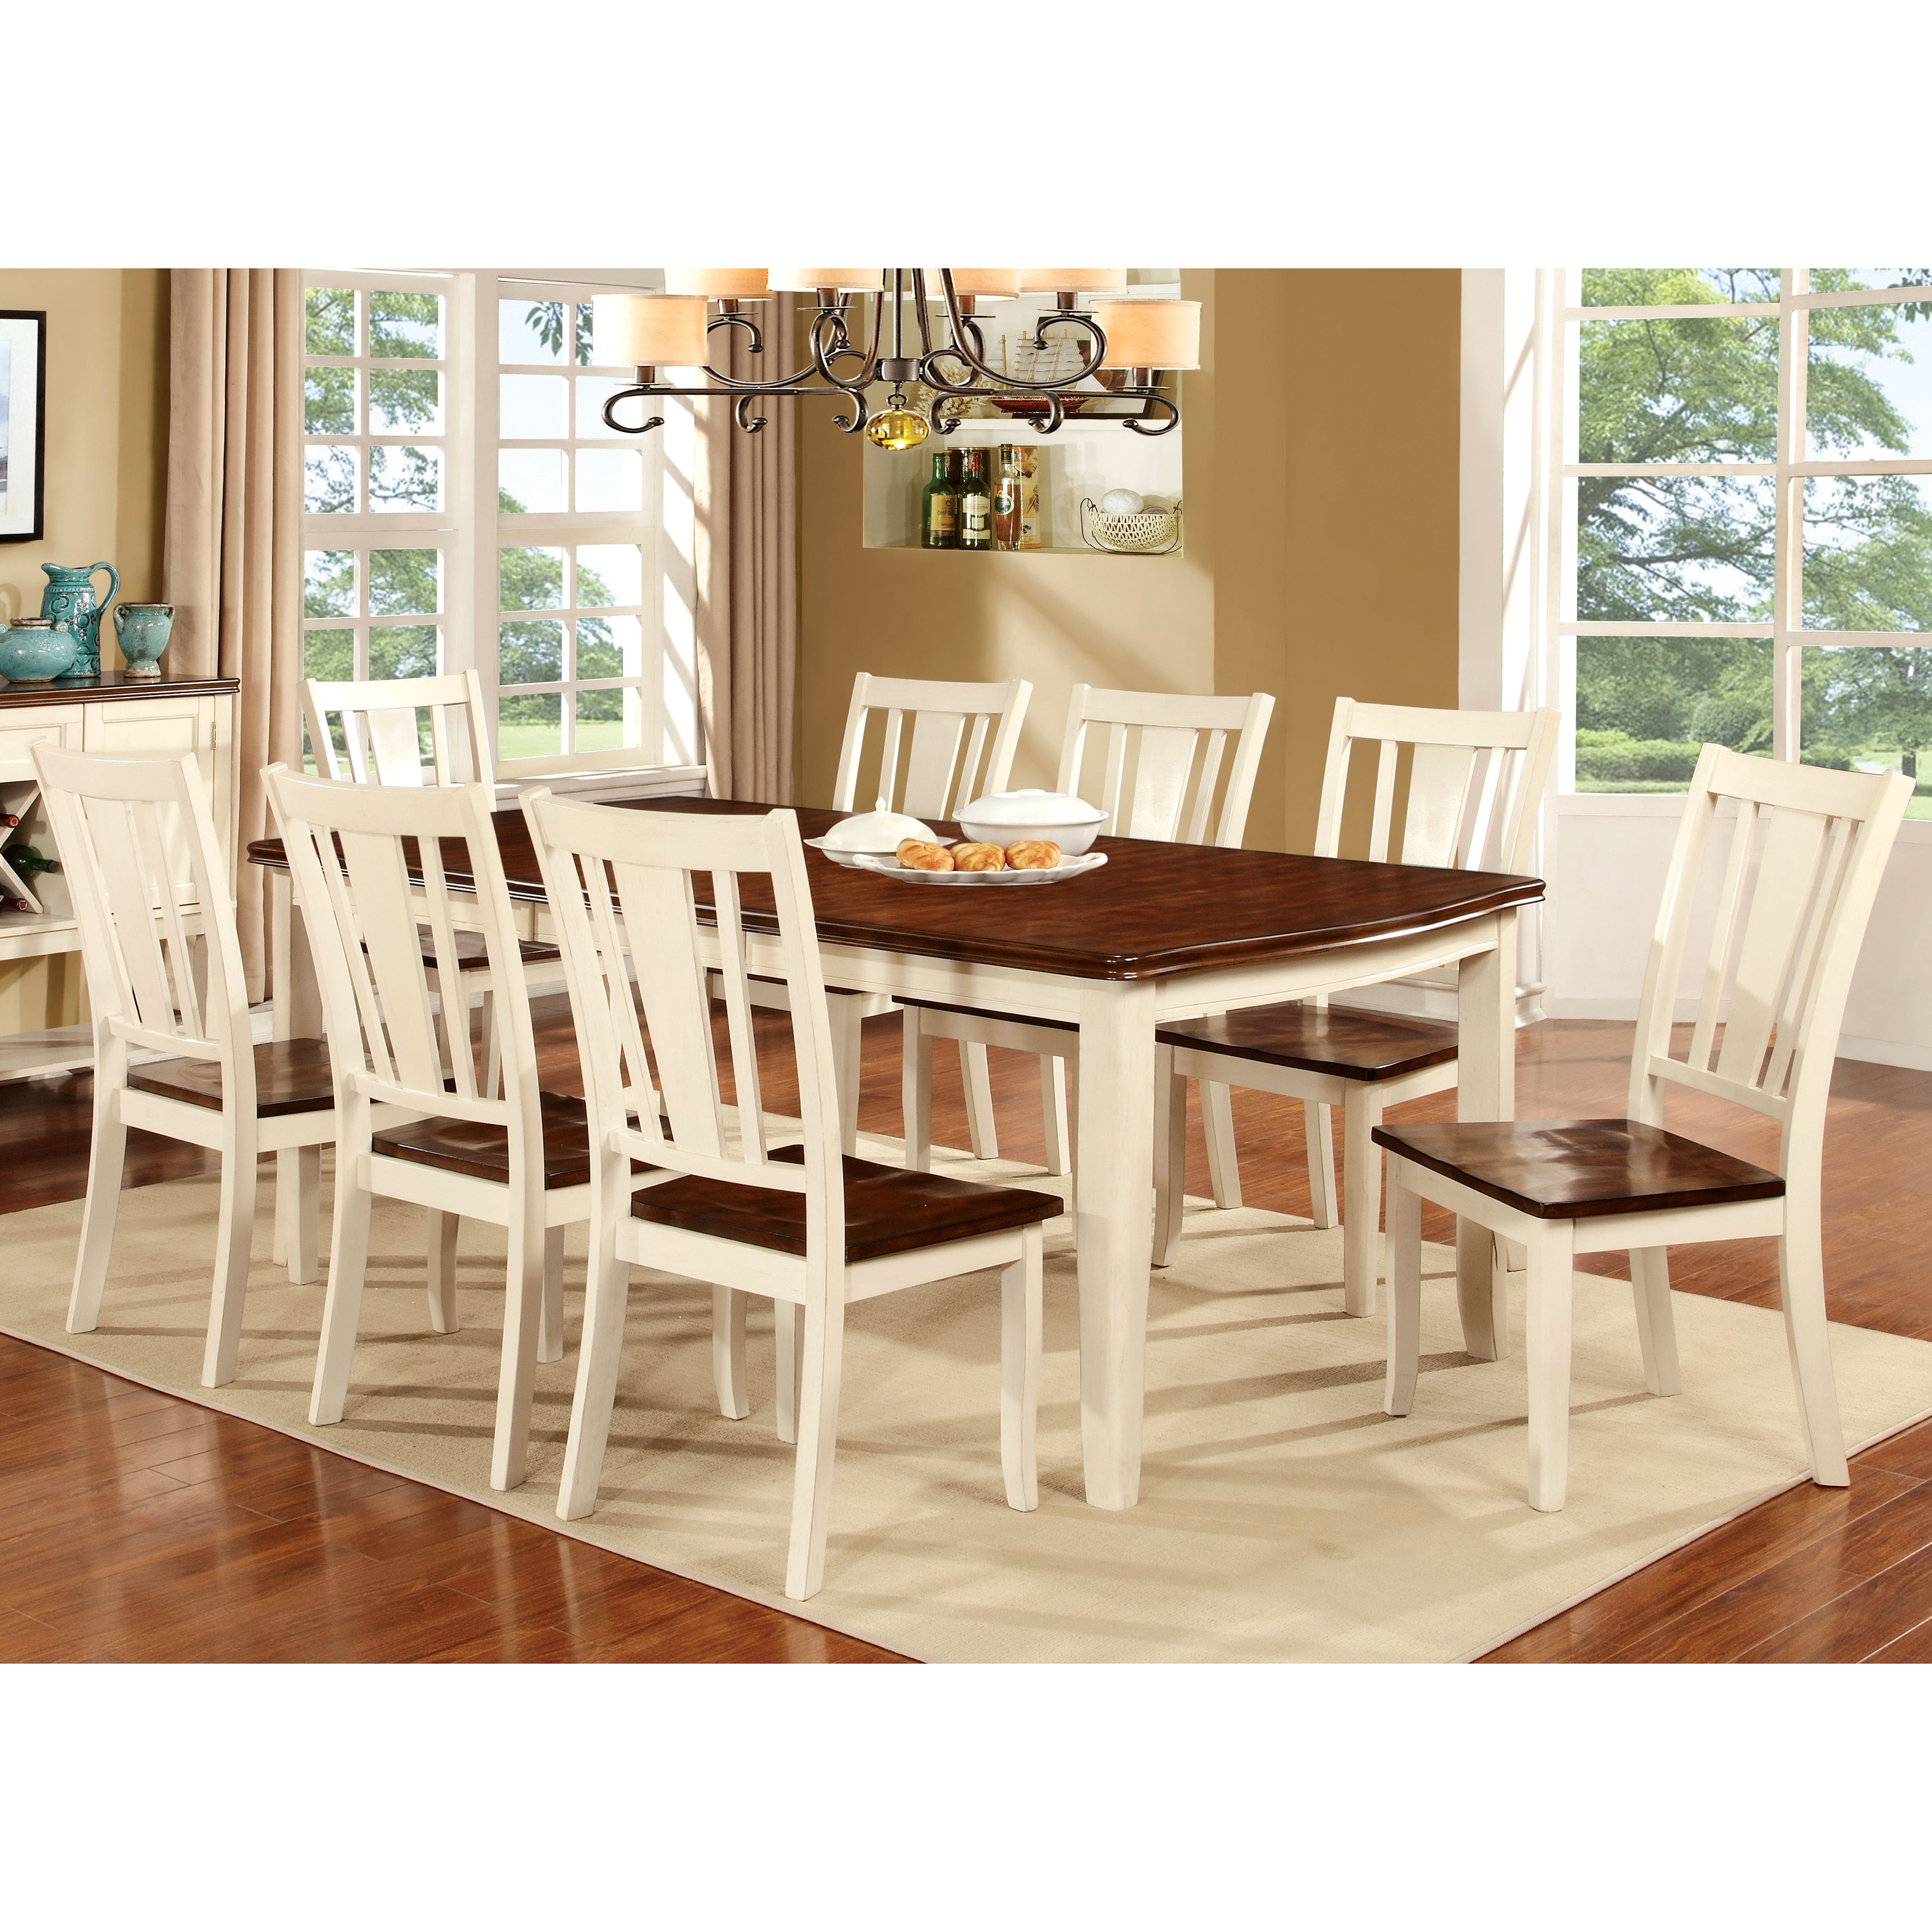 Furniture of America Betsy Jane 9-piece Country Style Din...